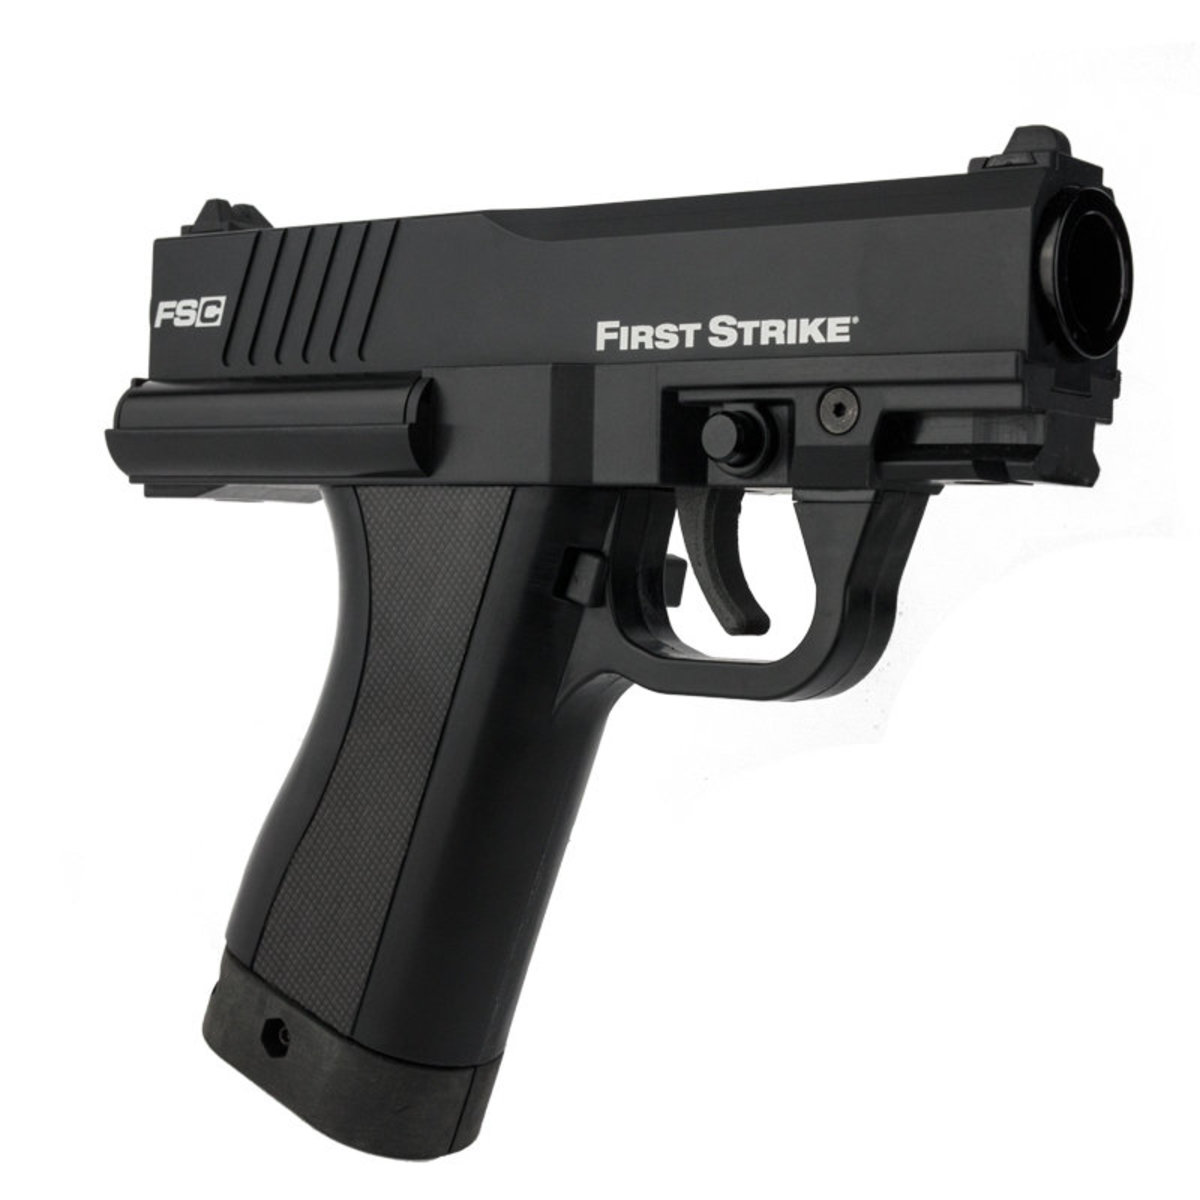 View larger image of First Strike FSC Compact Paintball Pistol with 2 Mags - Black